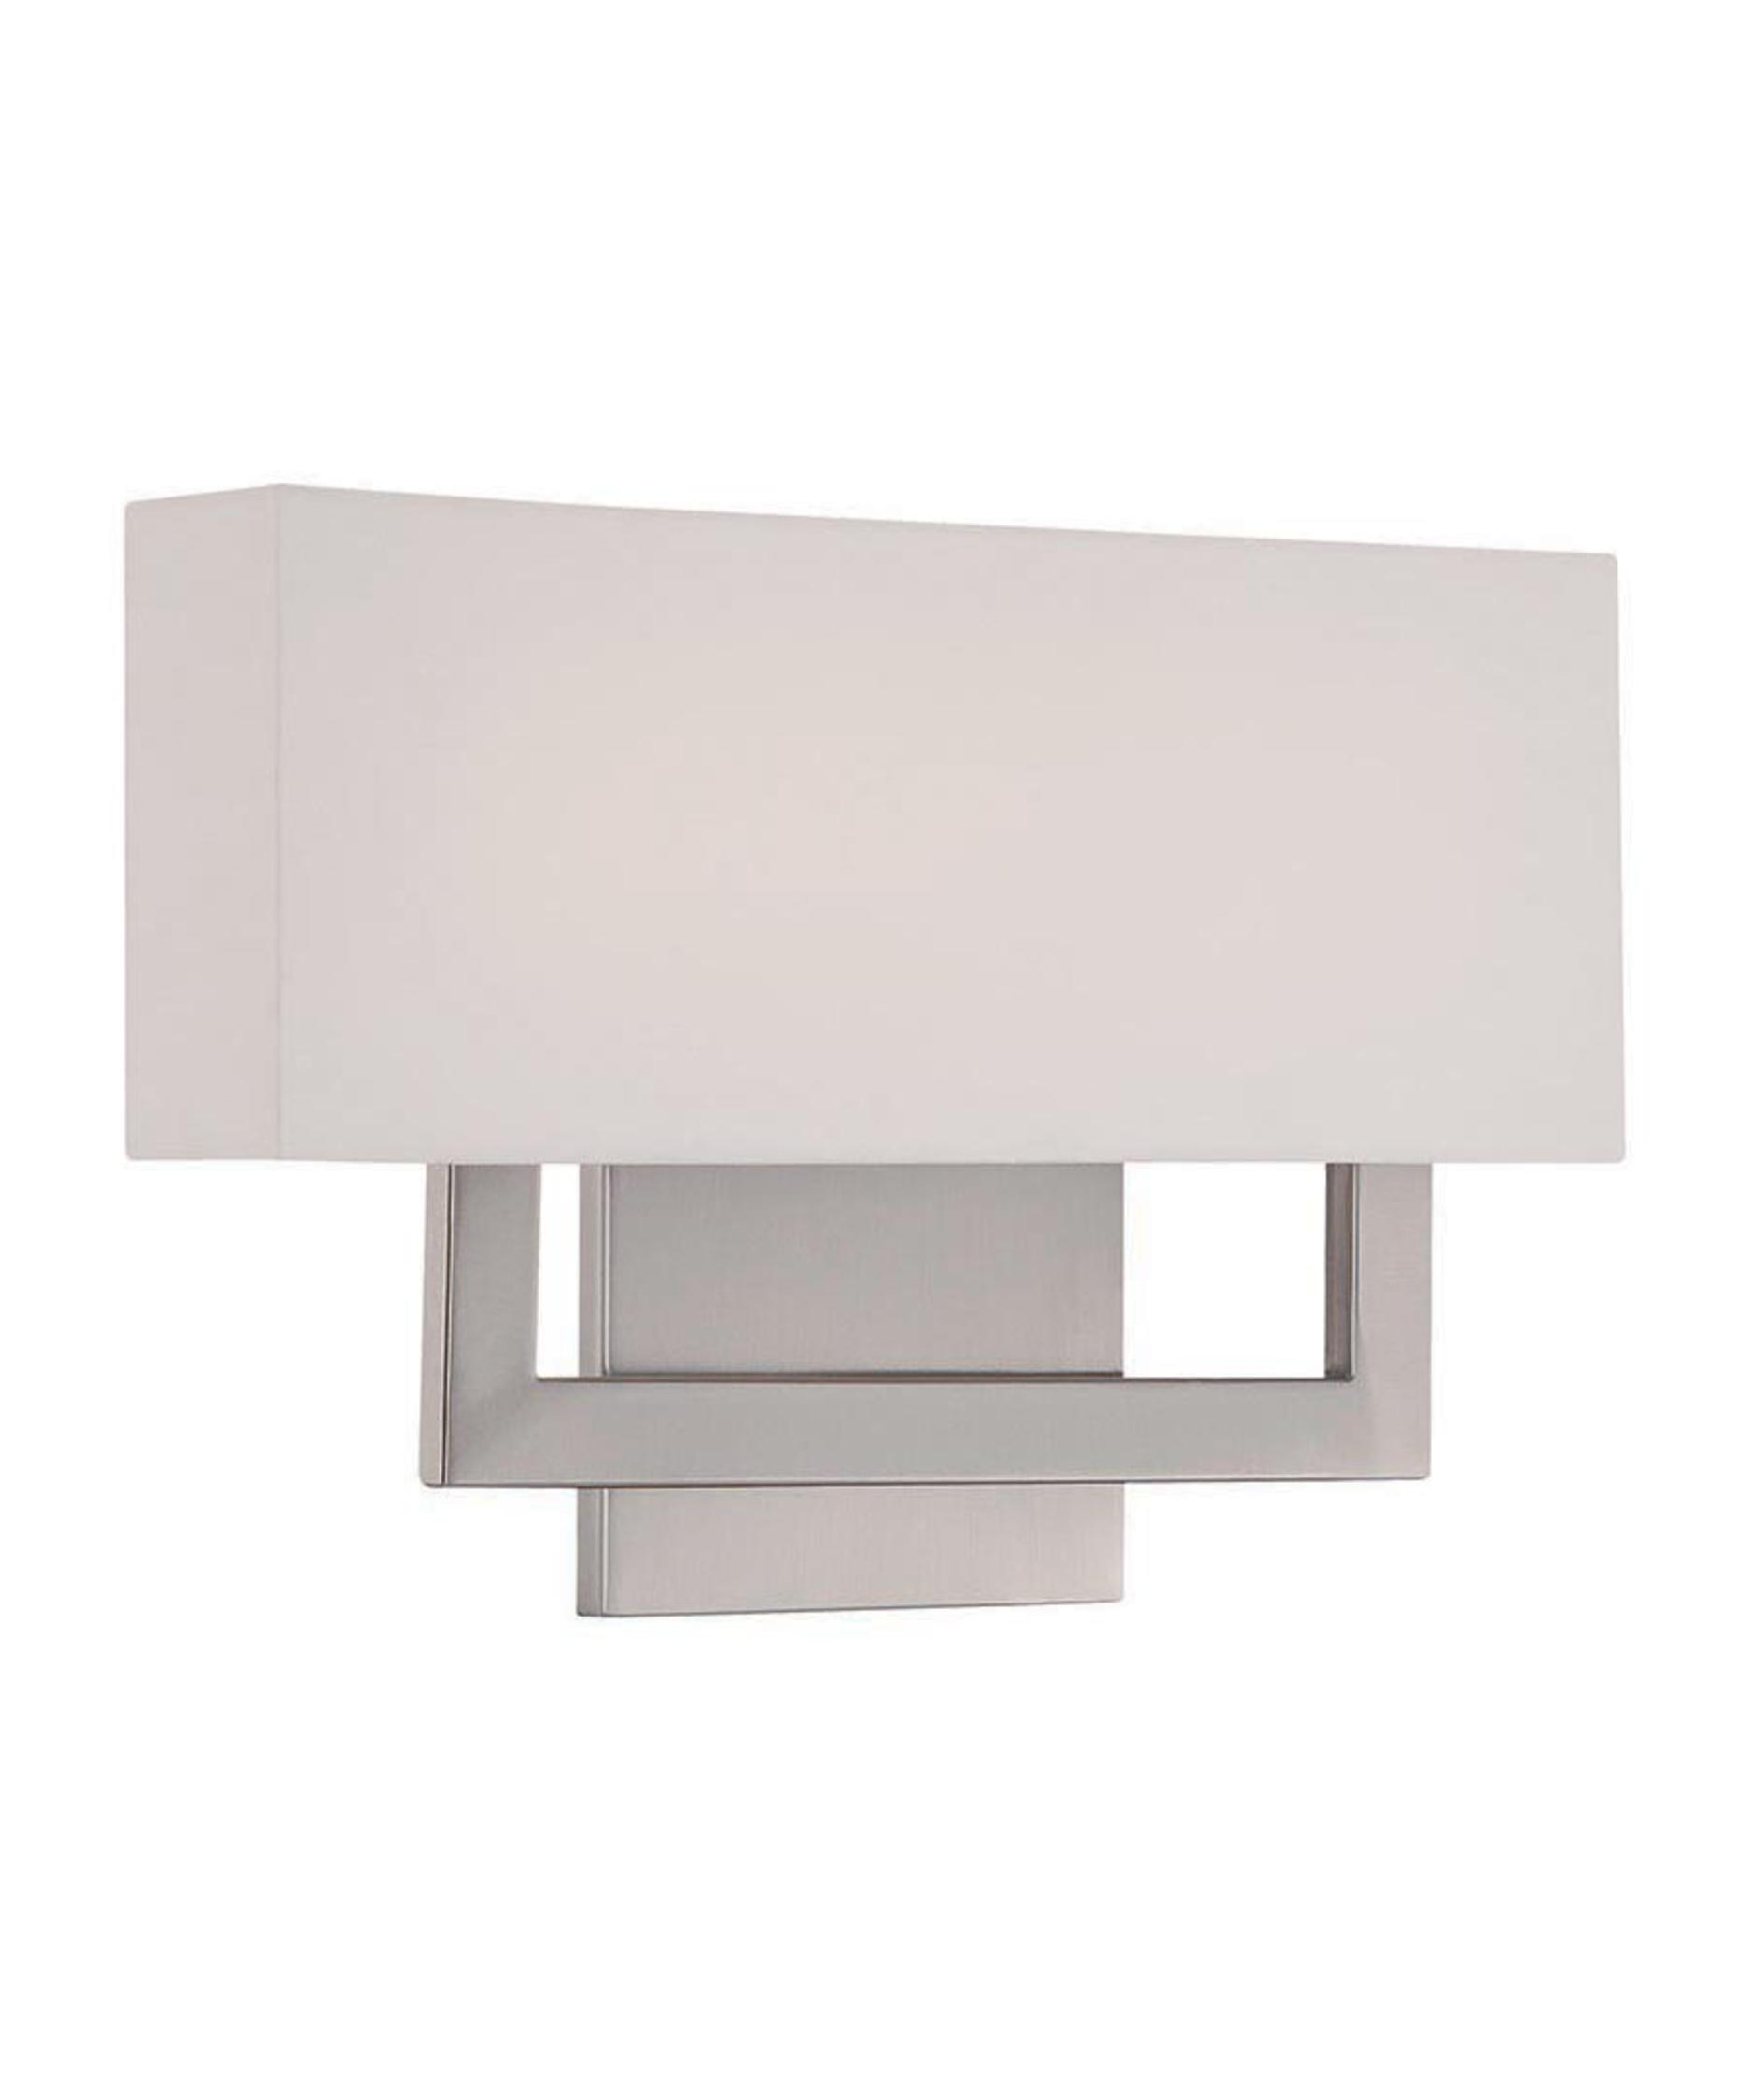 wac lighting ws13115 manhattan 15 inch wide wall sconce capitol lighting - Wac Lighting